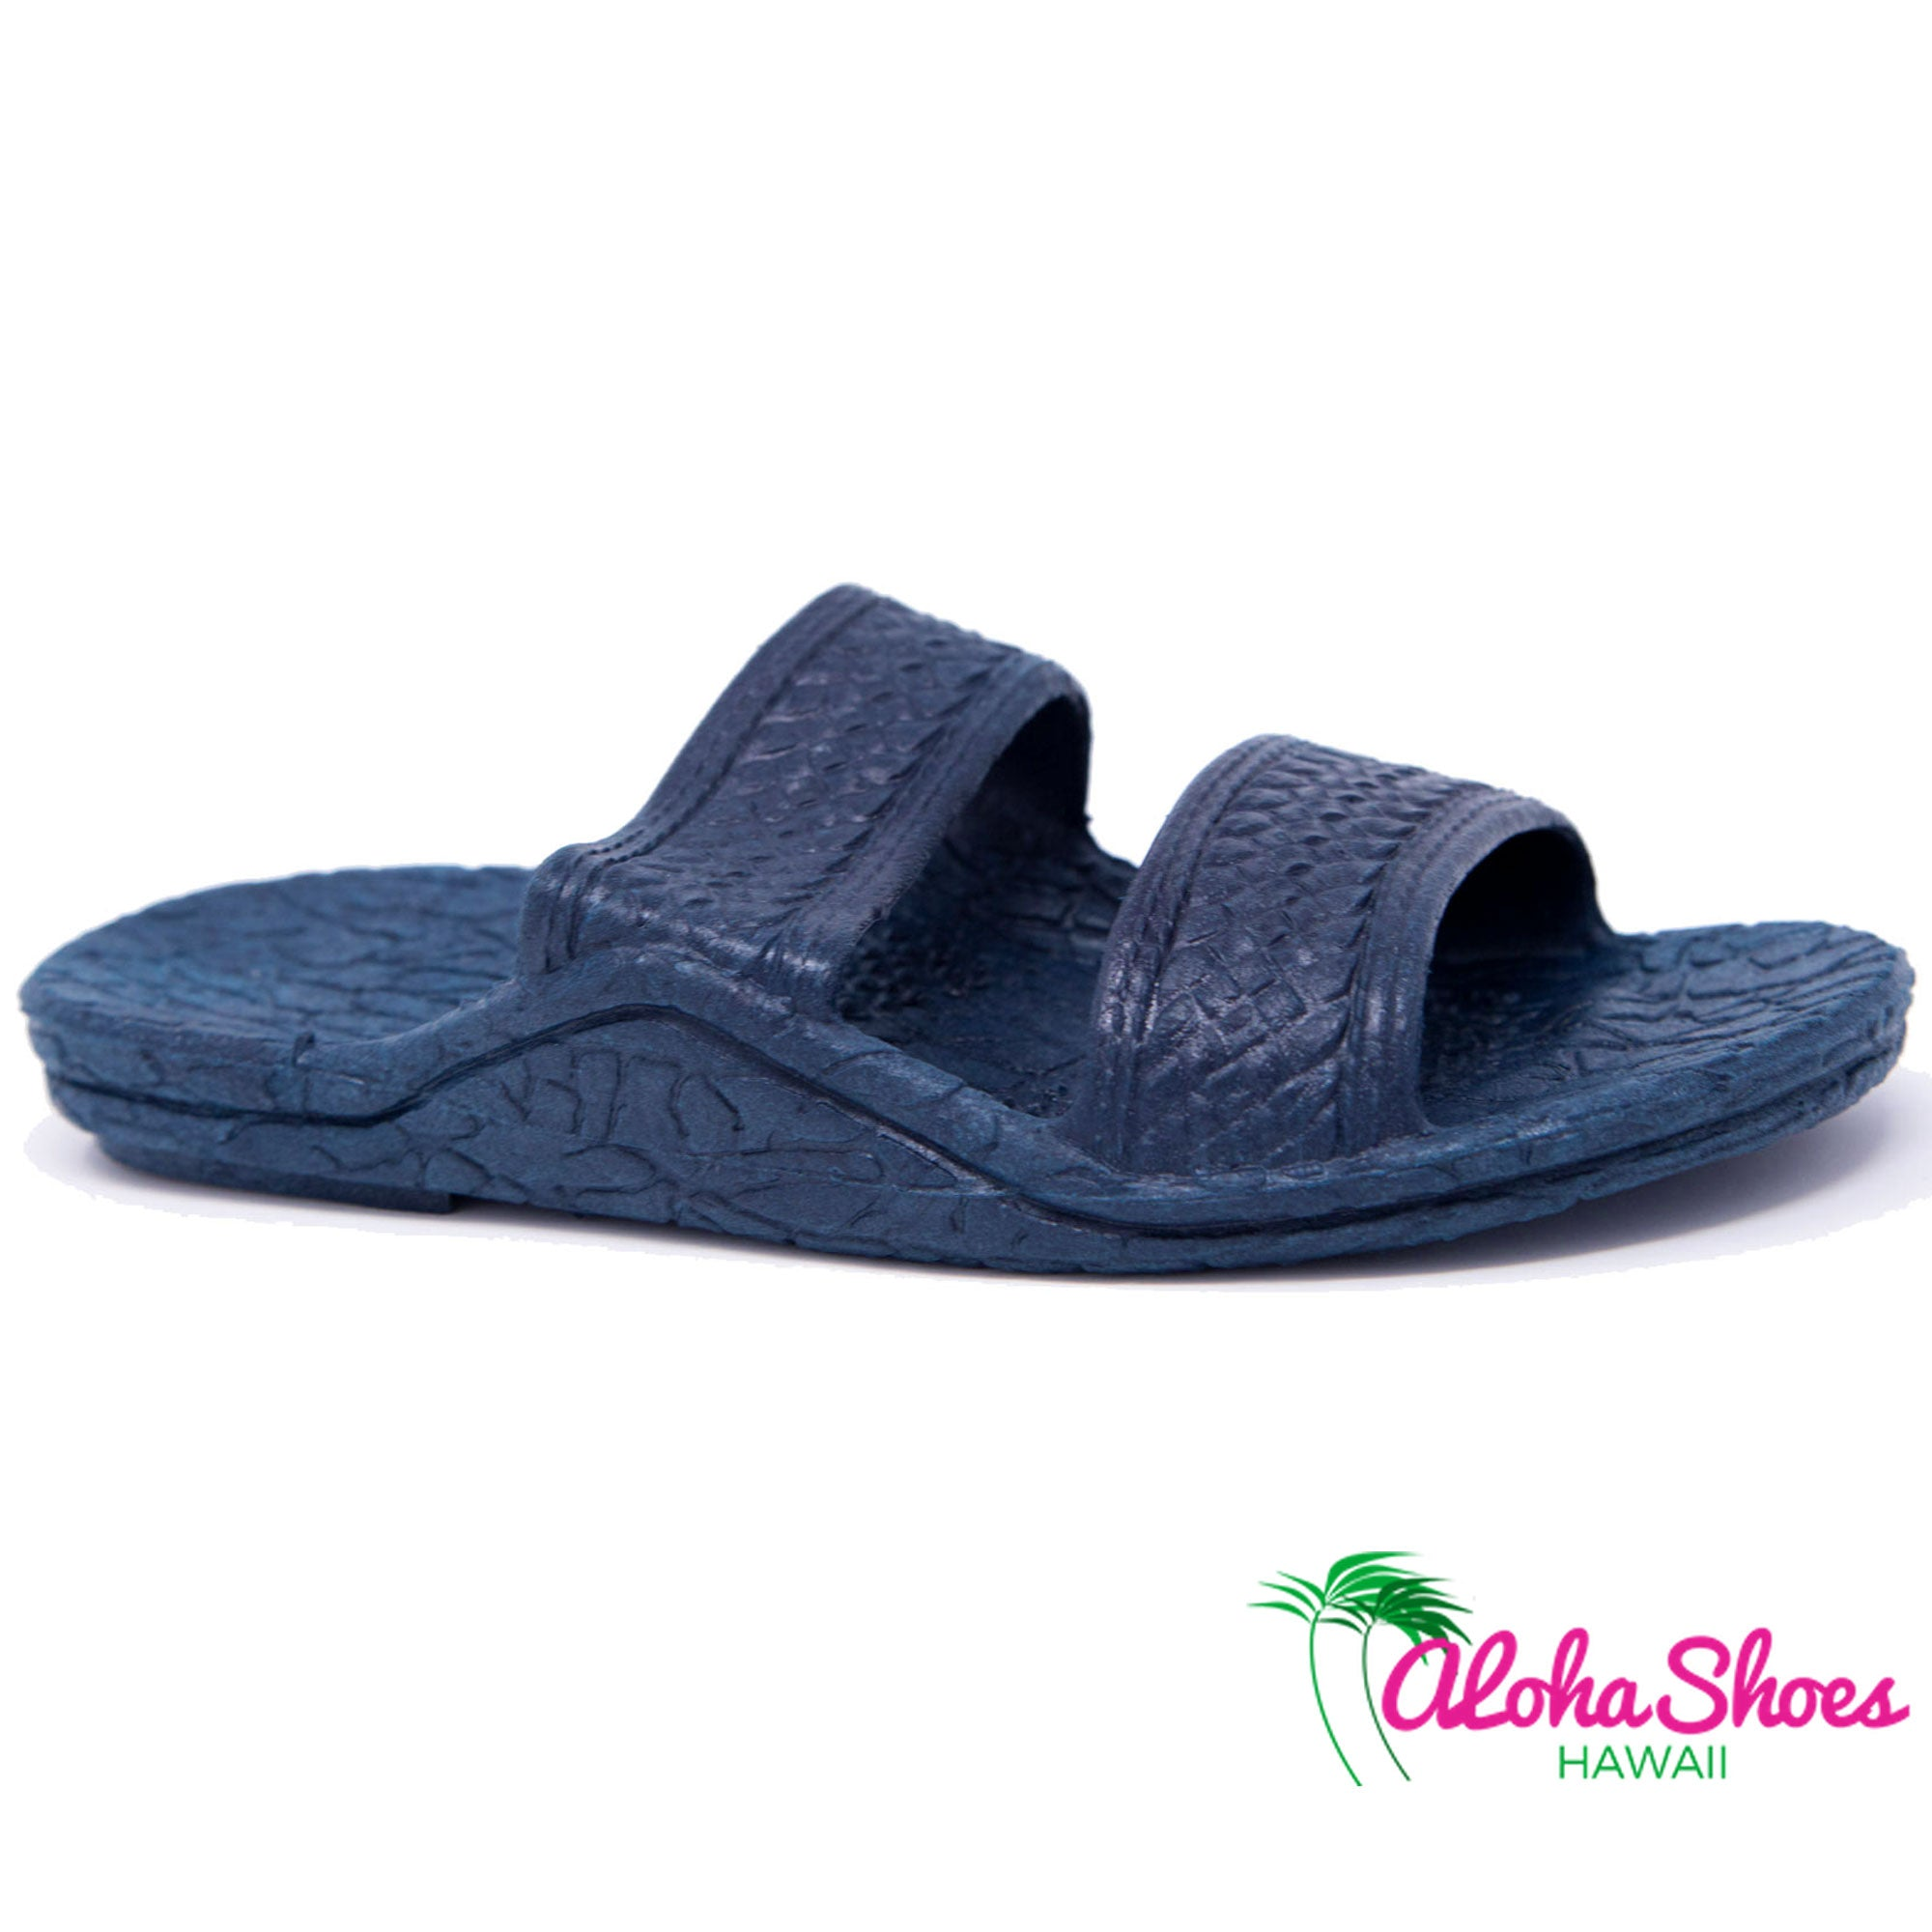 1e02ba92a Kids Jandals by Pali Hawaii Navy Hawaiian Design For Children -  AlohaShoes.com